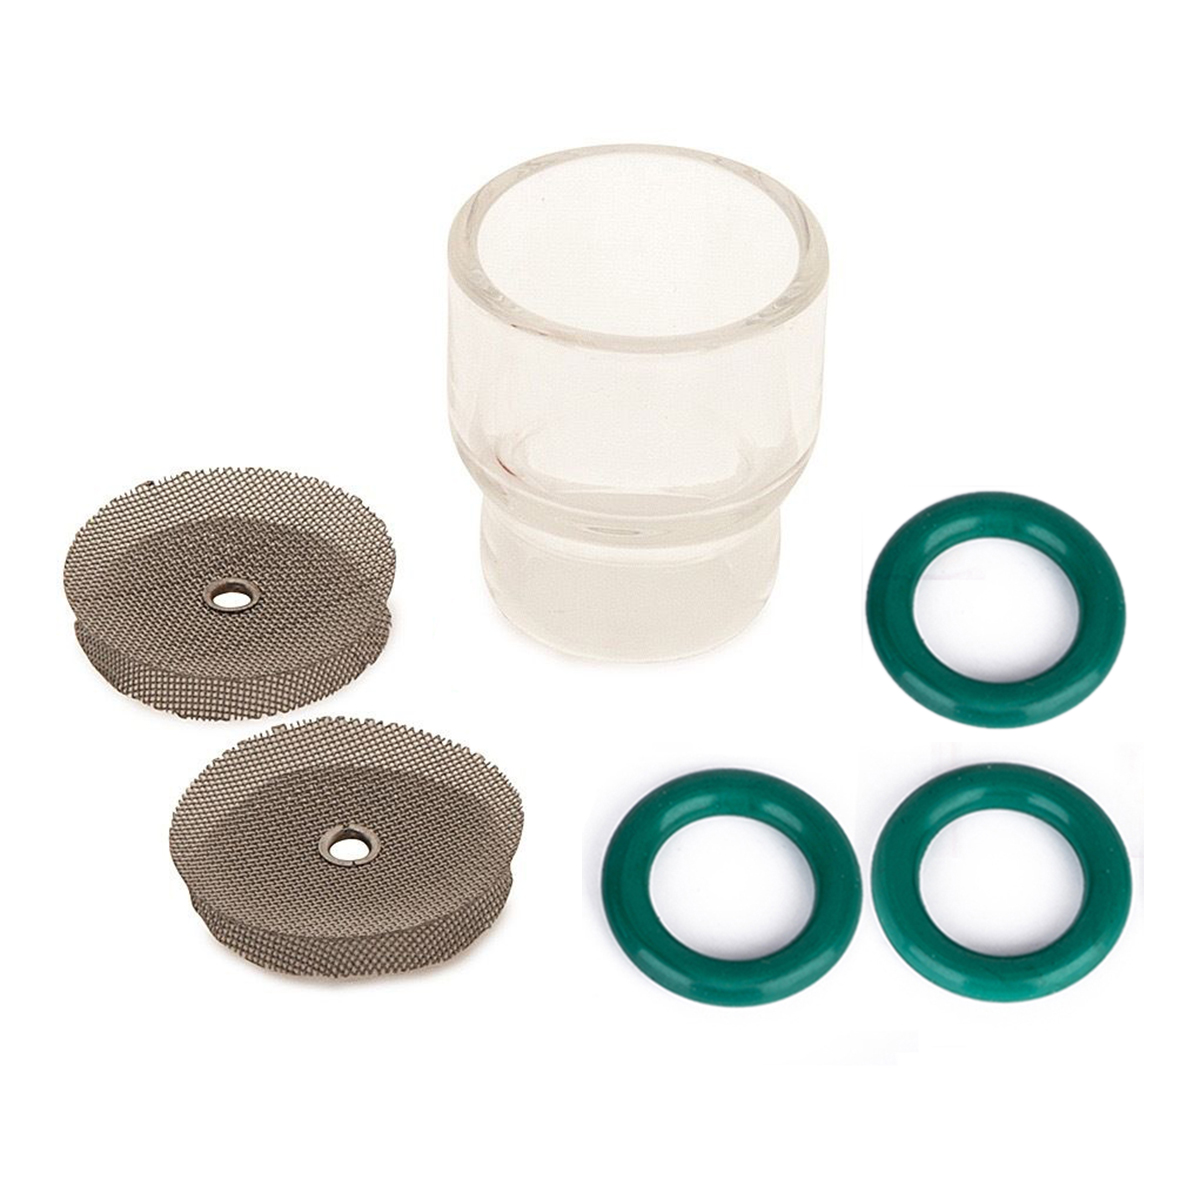 7pcs/set 1pc #12 Pyrex Tig Welding Cup For WP-9 & WP-17 Gas Lens 1.6mm/2.4mm 2pcs Stainless Steel Filters 3pcs O-rings